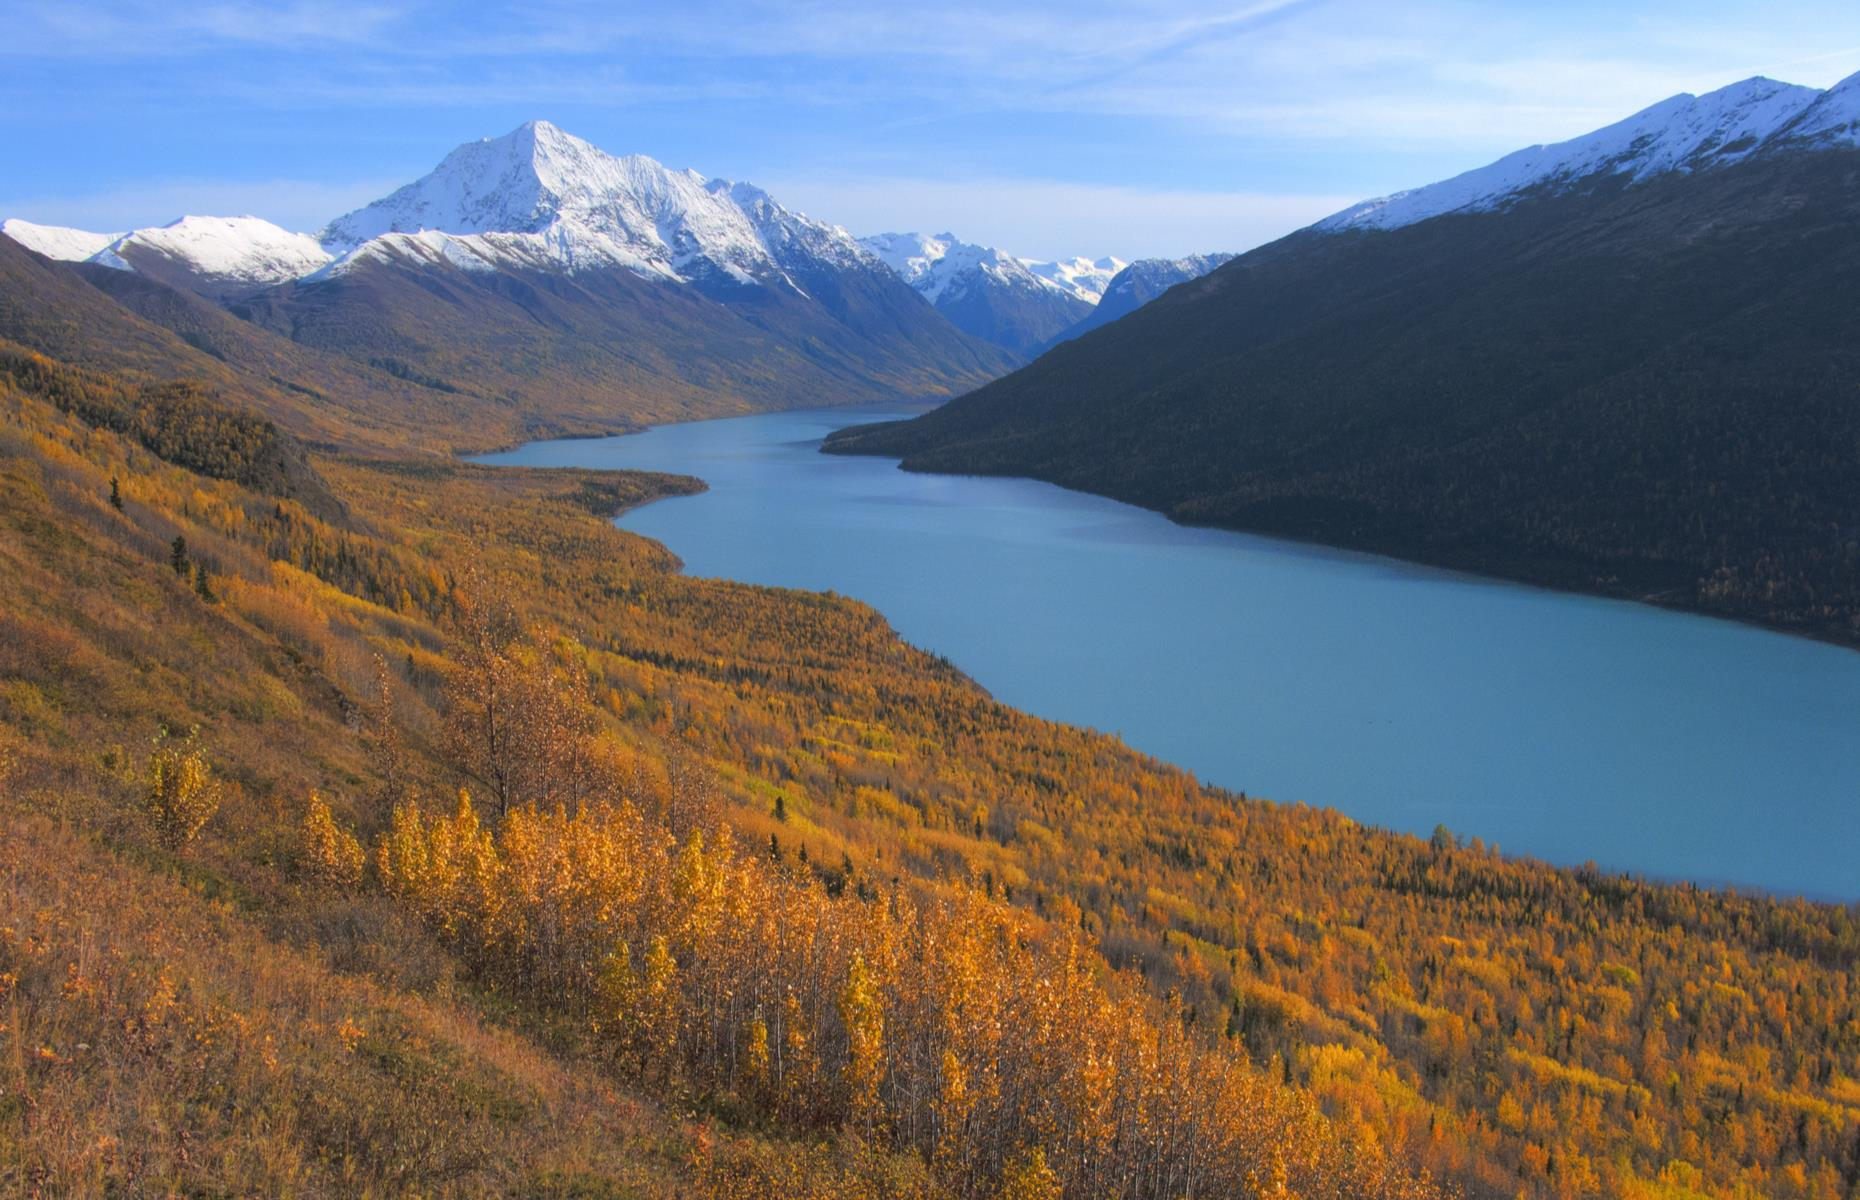 Slide 14 of 35: Flanked by the fall's vibrant oranges and reds in this stunning shot, the seven-mile long (11km) Eklutna Lake is backdropped by majestic mountains, the tallest of which is Bashful Peak. It's a favorite spot of hikers, with ample trails to try including the two-and-a-half mile (4km) Twin Peaks Trail, and the 13-mile (21km) Eklutna Lakeside Trail. Alternatively, thrill-seekers can take a three-and-a-half-hour quad bike tour with locally-owned Riding Alaska ATV Tours, which takes visitors through the Chugach State Park and traverses along the lake, up towards the Eklutna Glacier itself.